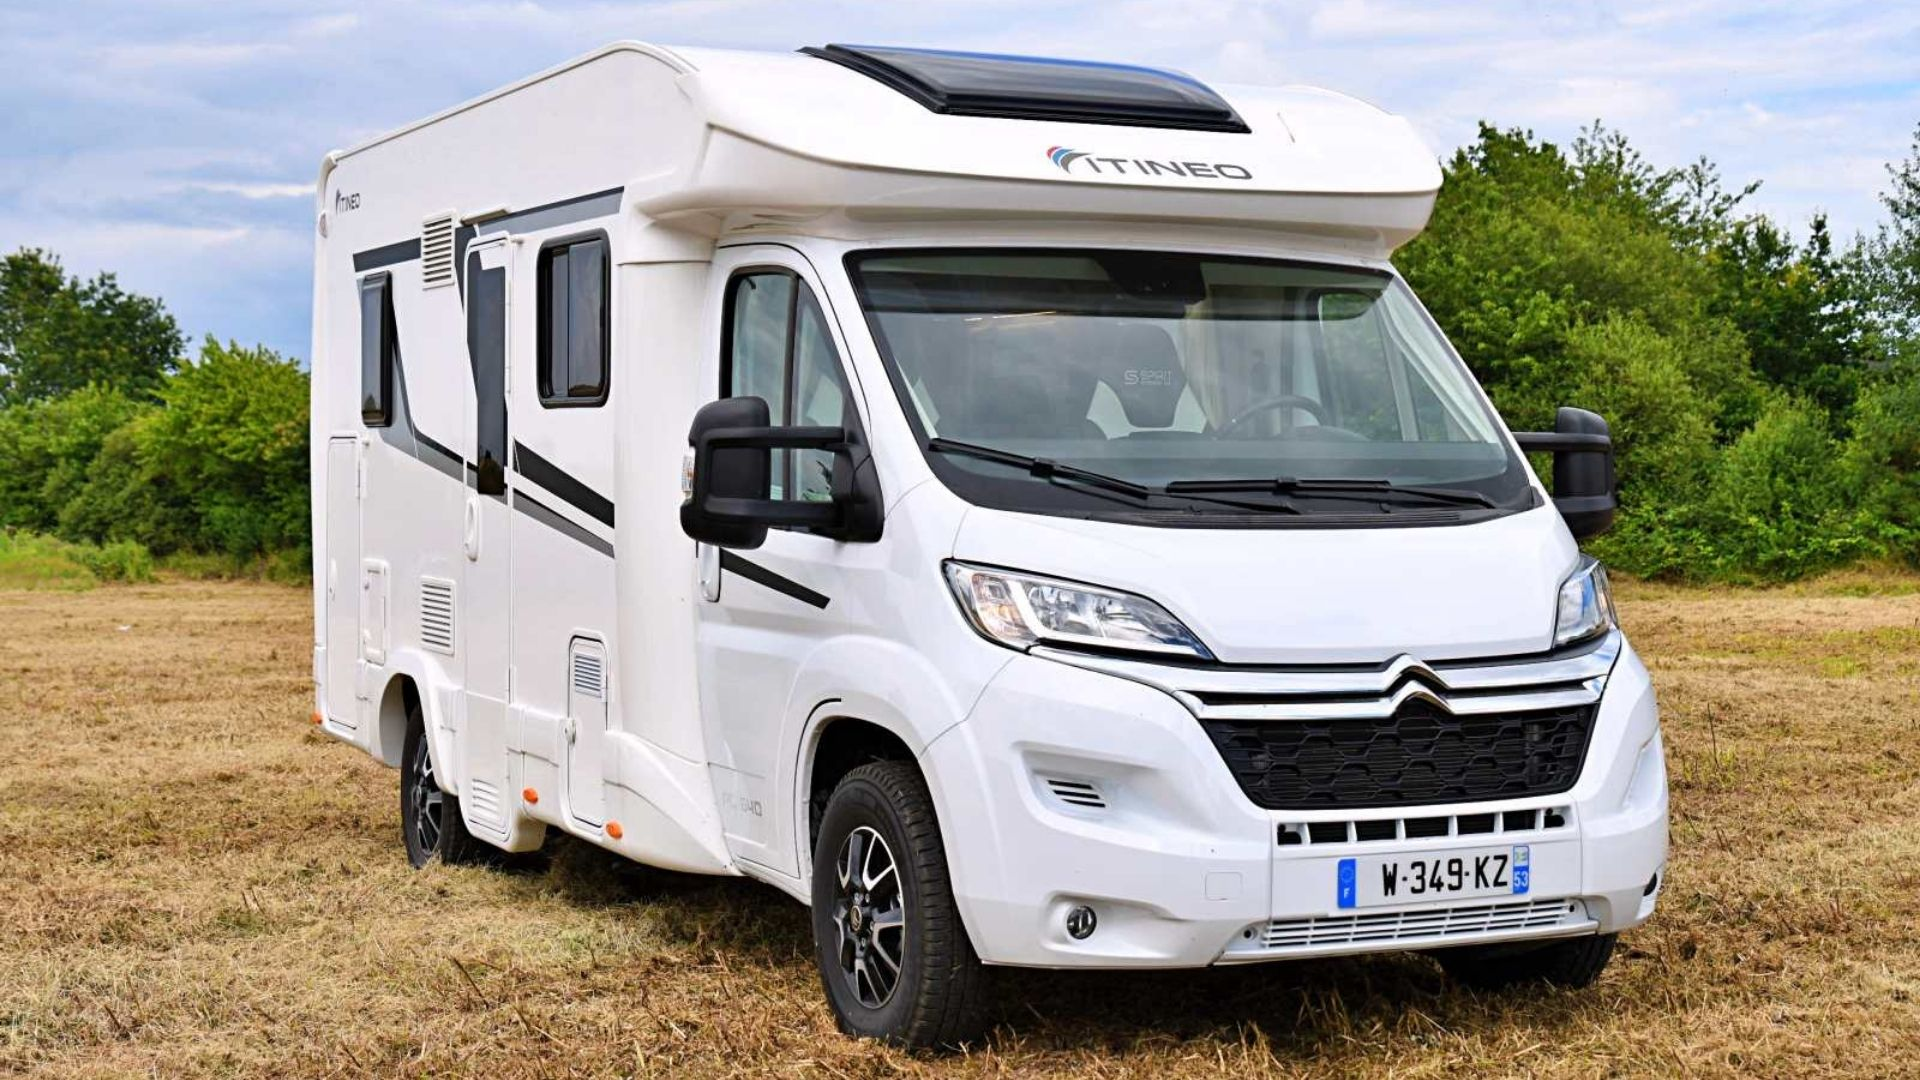 Camping-car Nomad Itineo Traveller voyage voyager camping compact